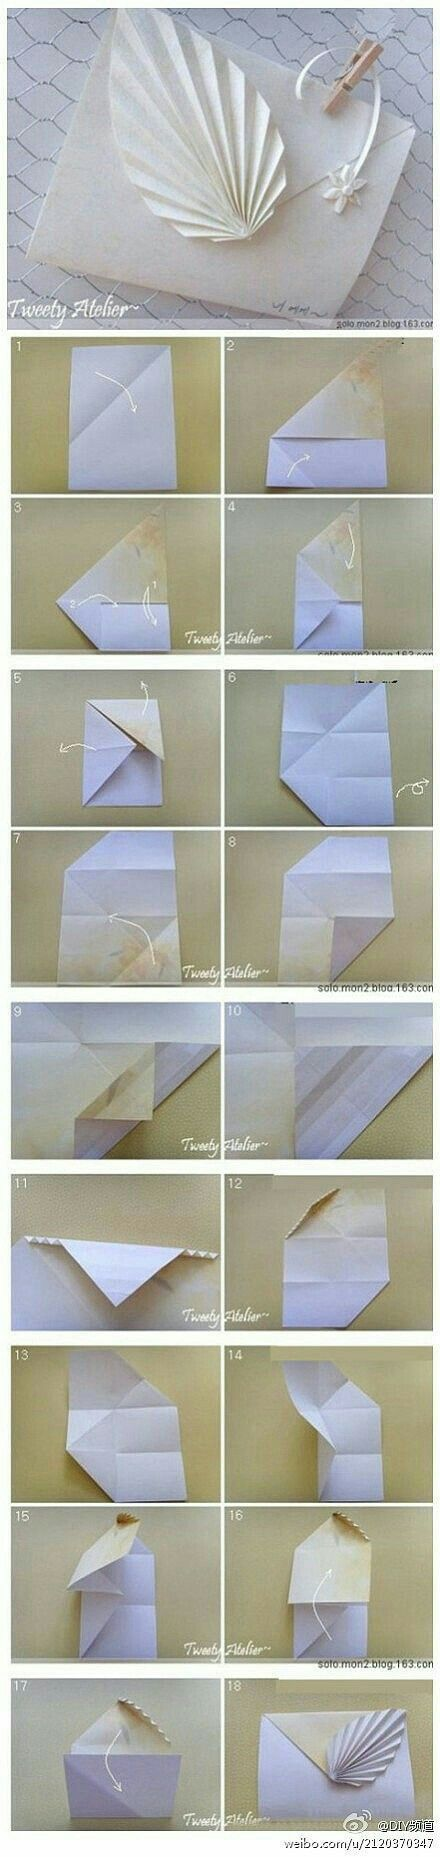 Origami bamboo letterfold folding instructions - What A Cool Way To Dress Up An Envelope Or Gift